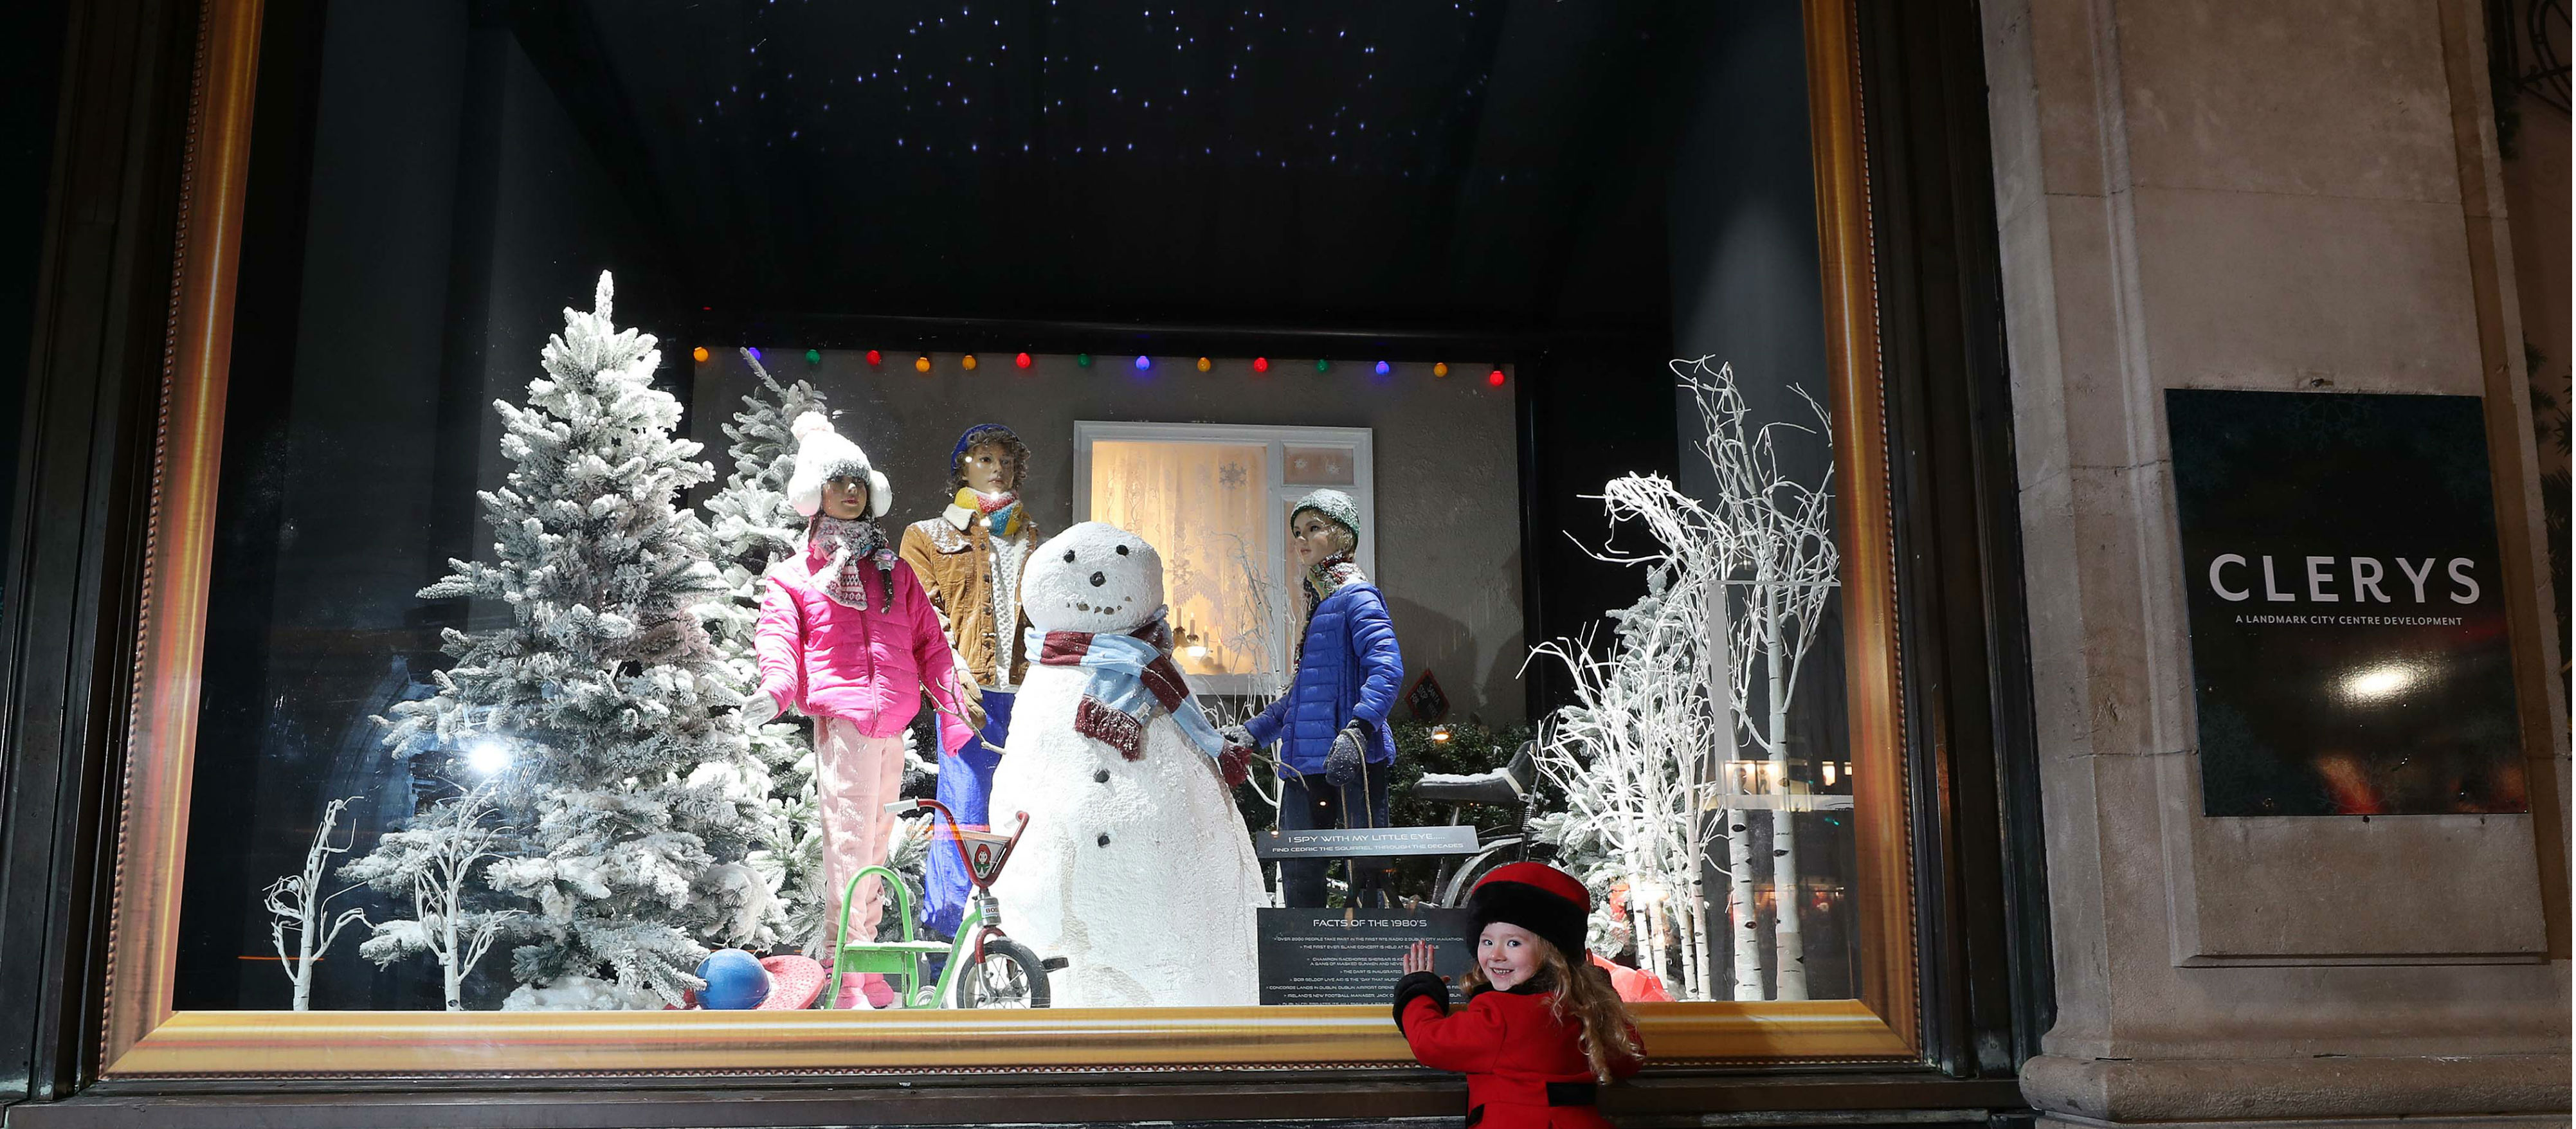 Famous Christmas Windows At Clerys Return